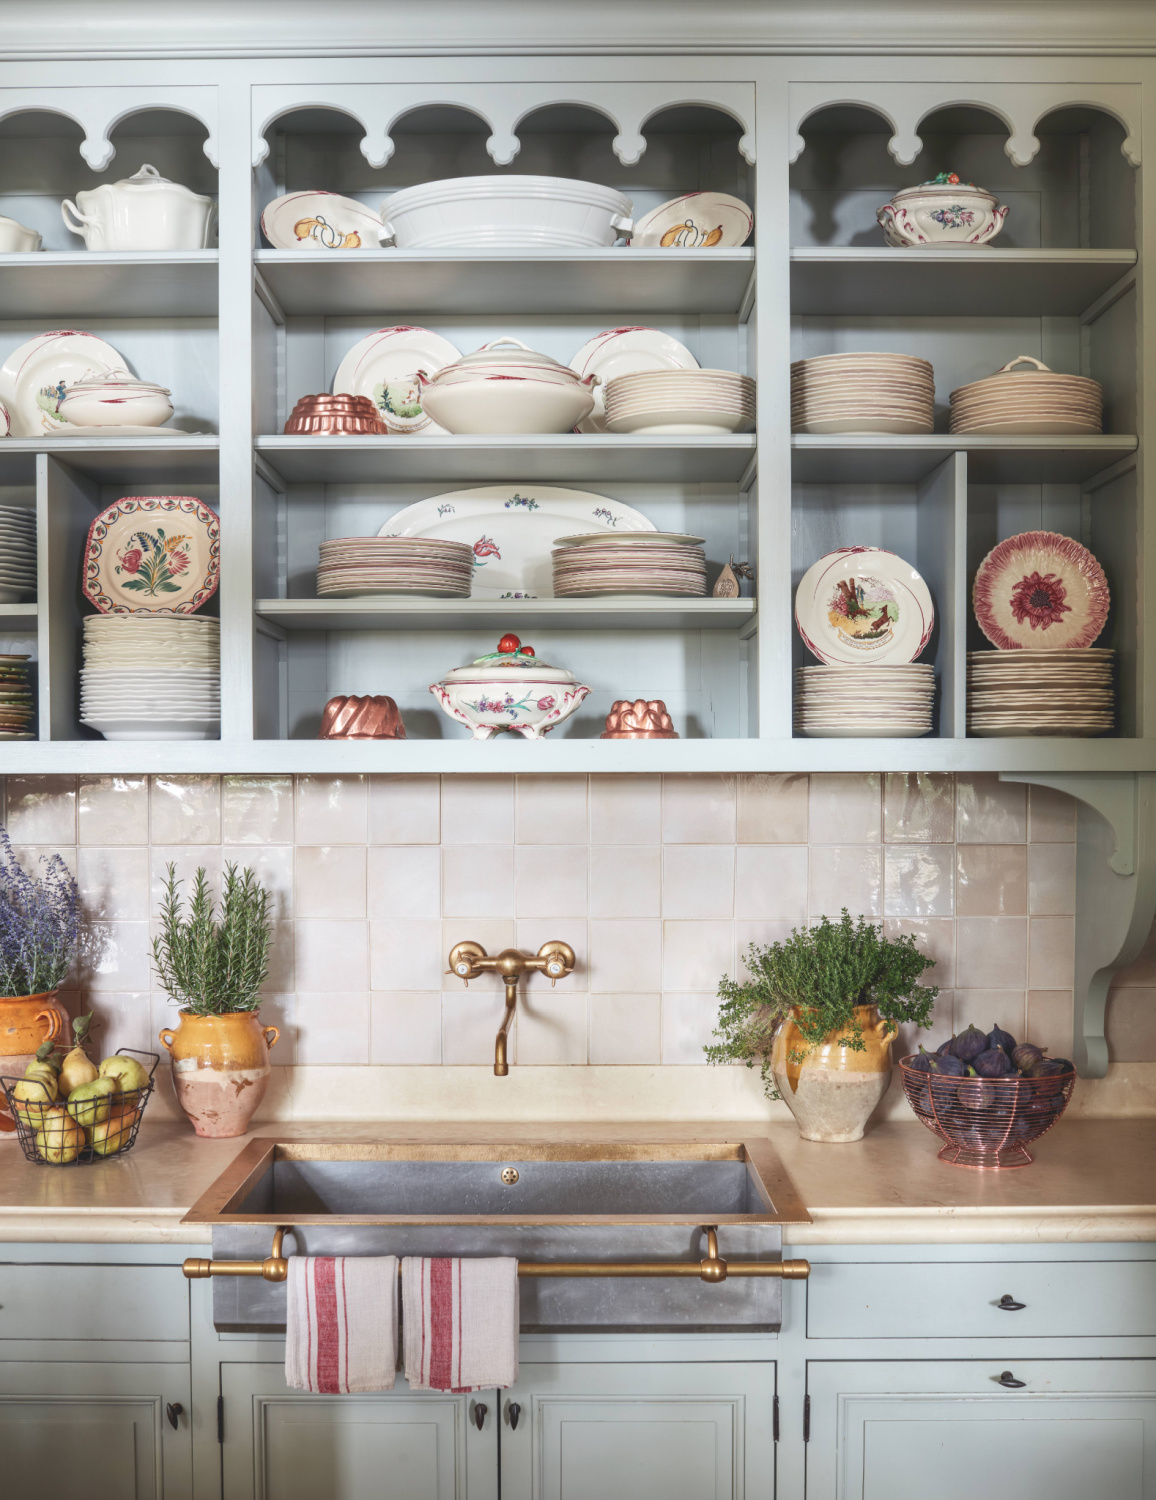 Light blue French kitchen in Provence's Le Mas des Poiriers - photo by Luke White in PROVENCE STYLE by Shauna Varvel. #frenchkitchen #provence